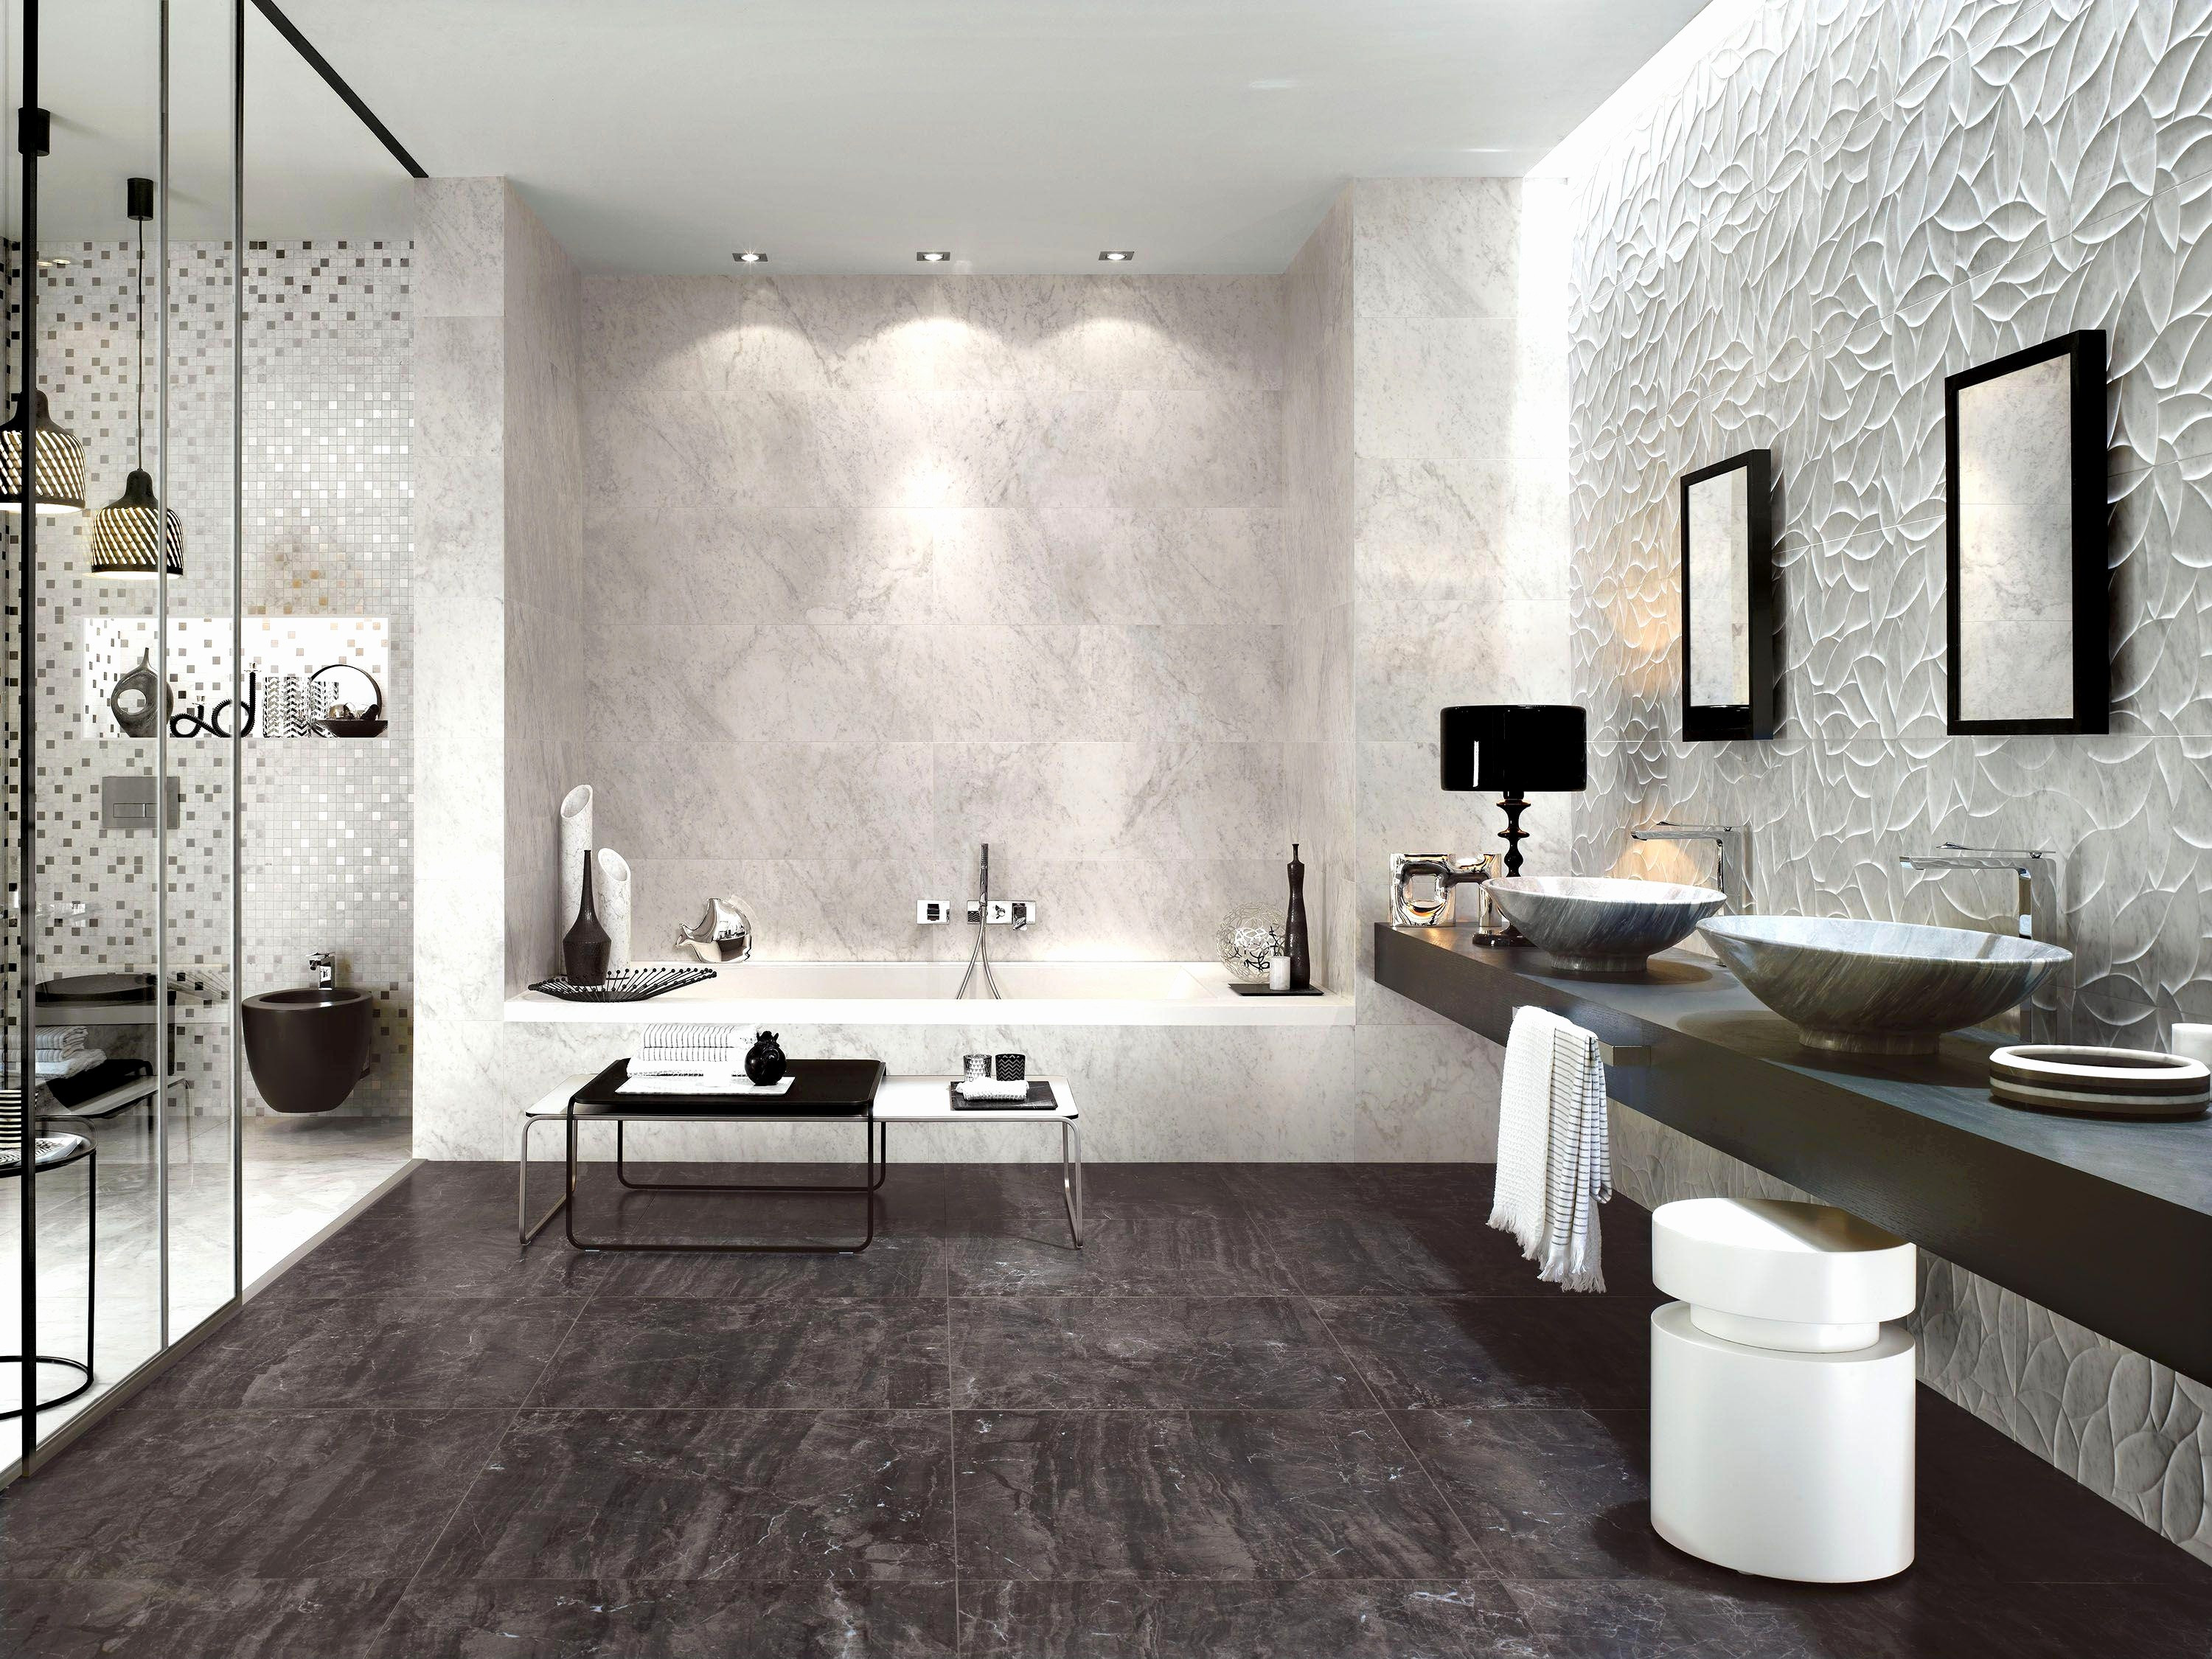 14 Fabulous Gray Hardwood Floor Ideas 2021 free download gray hardwood floor ideas of awesome best broom for dog hair on hardwood floors 332ndf org with gallery unique bathroom tiling ideas best h sink install bathroom i 0d exciting 50 lovely hard